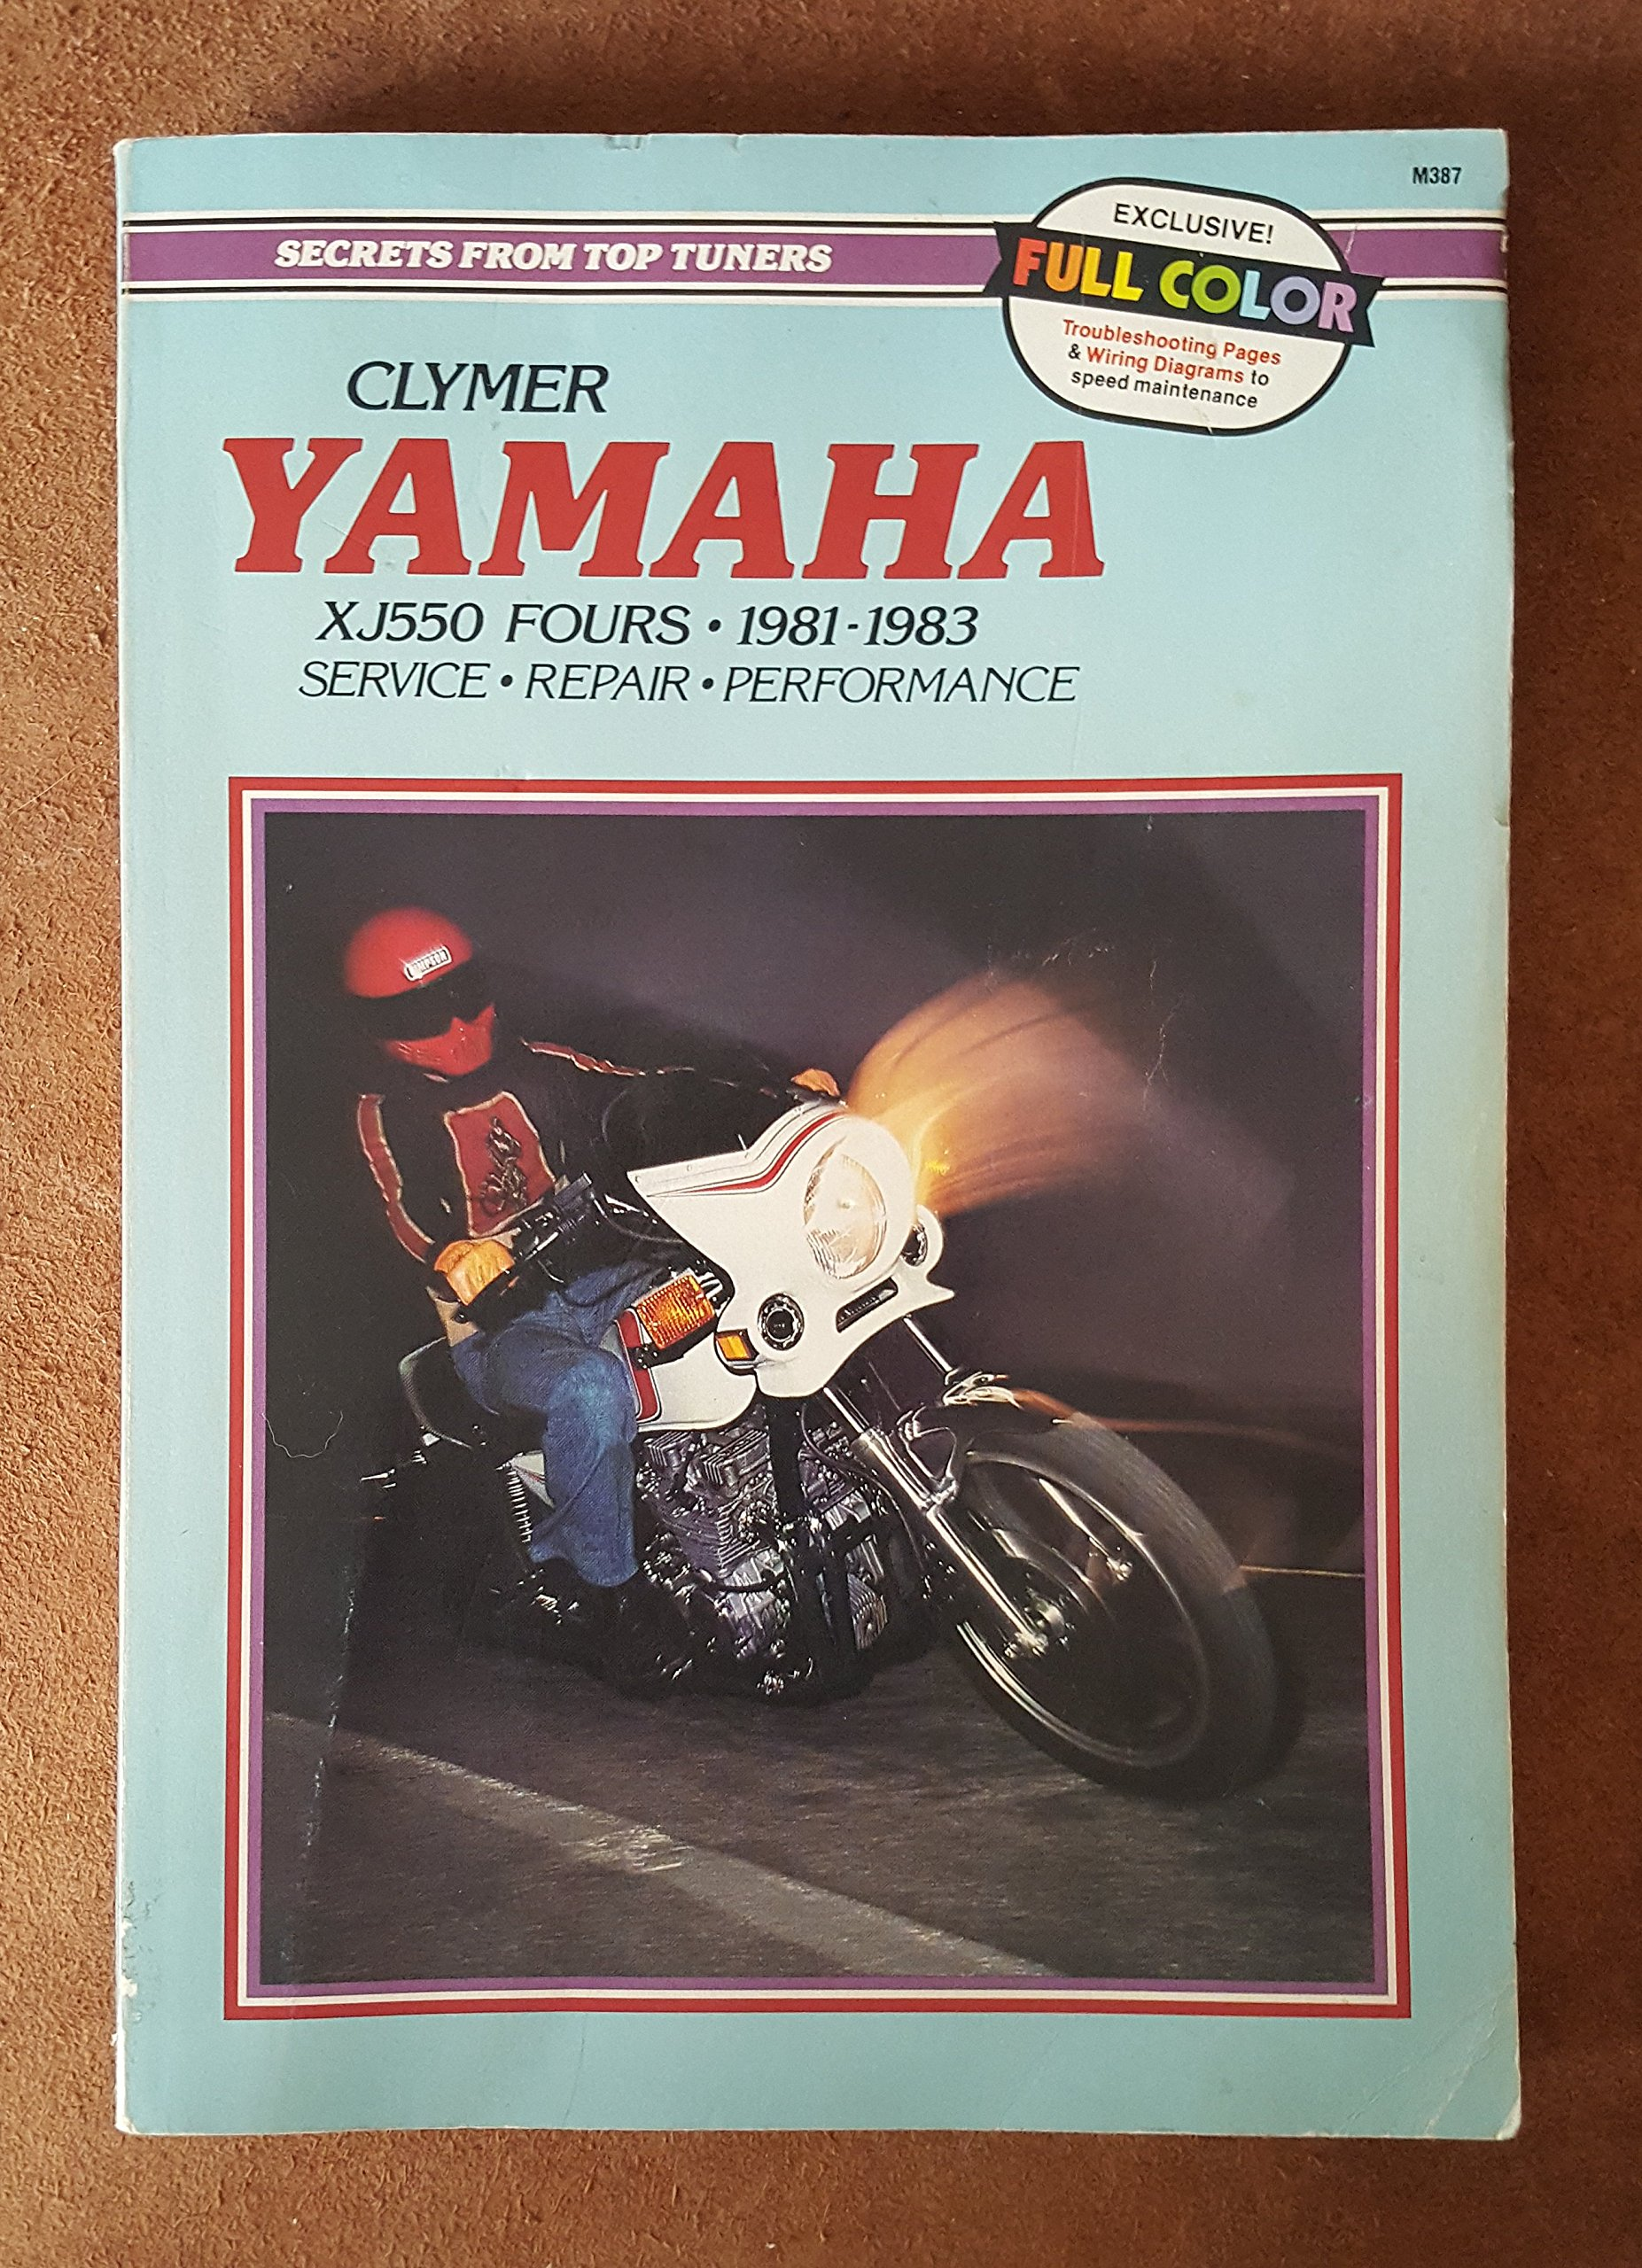 Clymer Yamaha (XJ550 Fours 1981-1983: Service- Repair- Performance): Ron  Wright, Sydnie A. Wayson: Amazon.com: Books